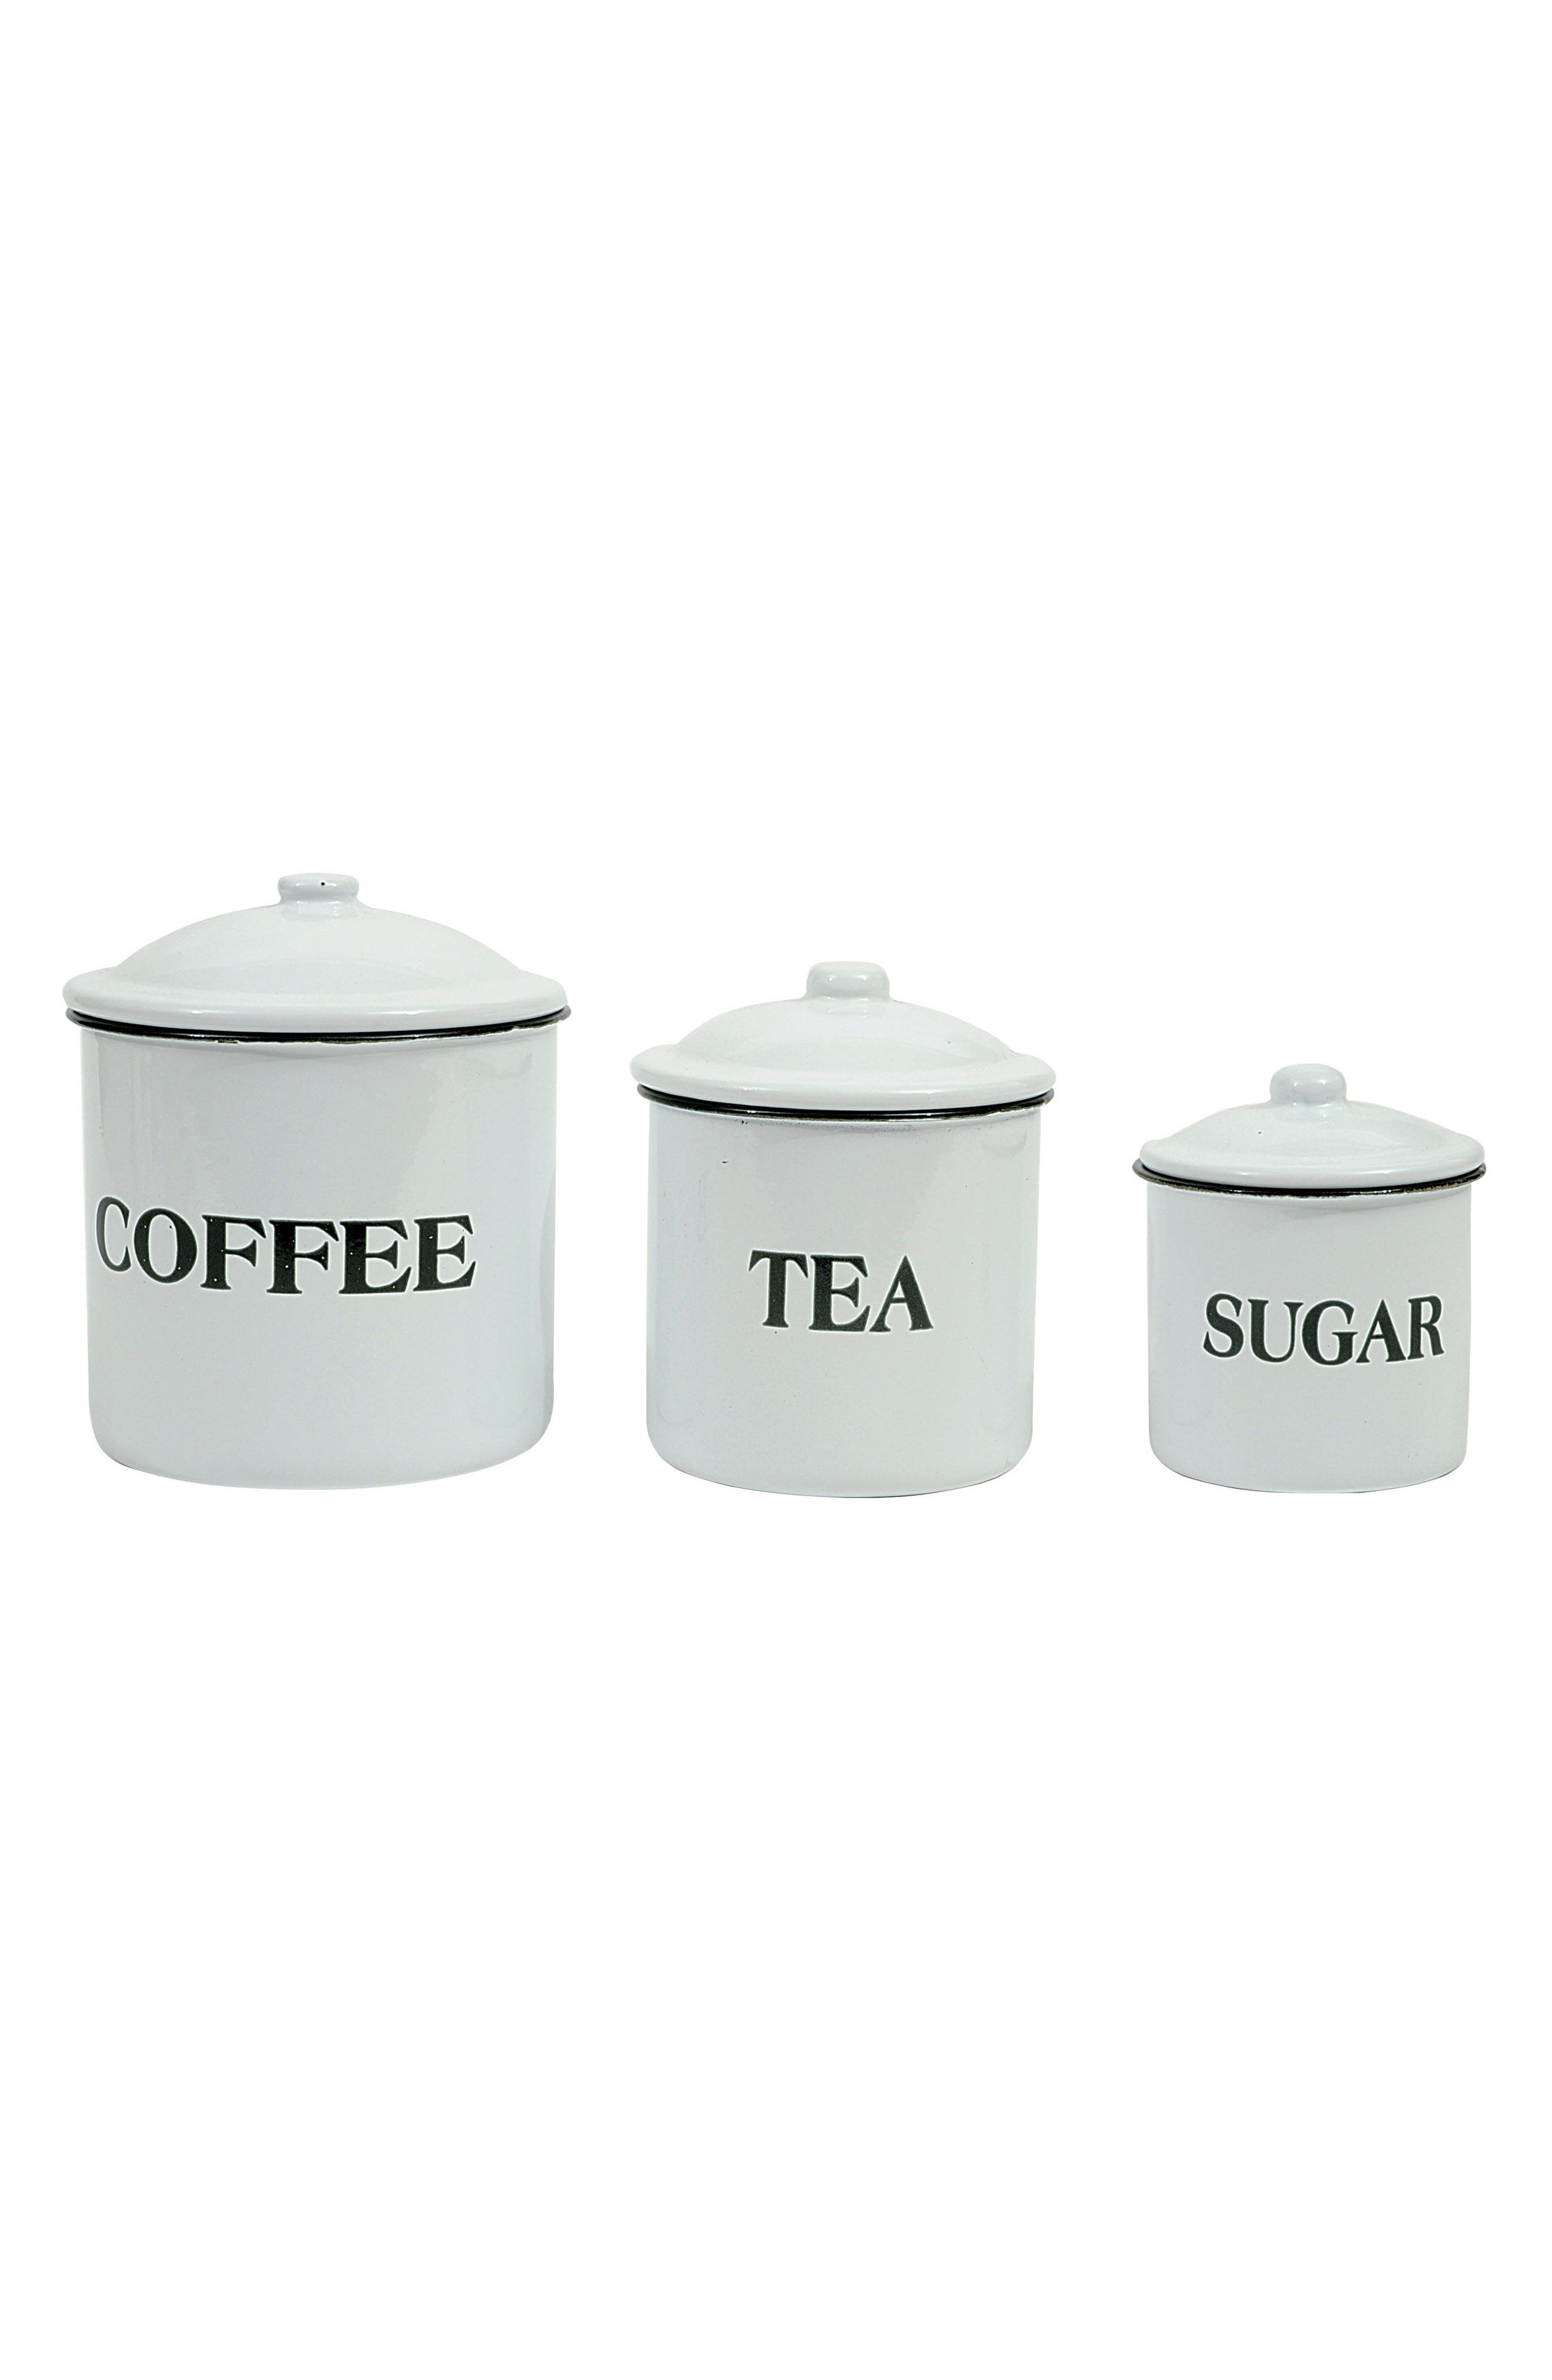 Set of 3 Enamel Containers,                         Main,                         color, 100